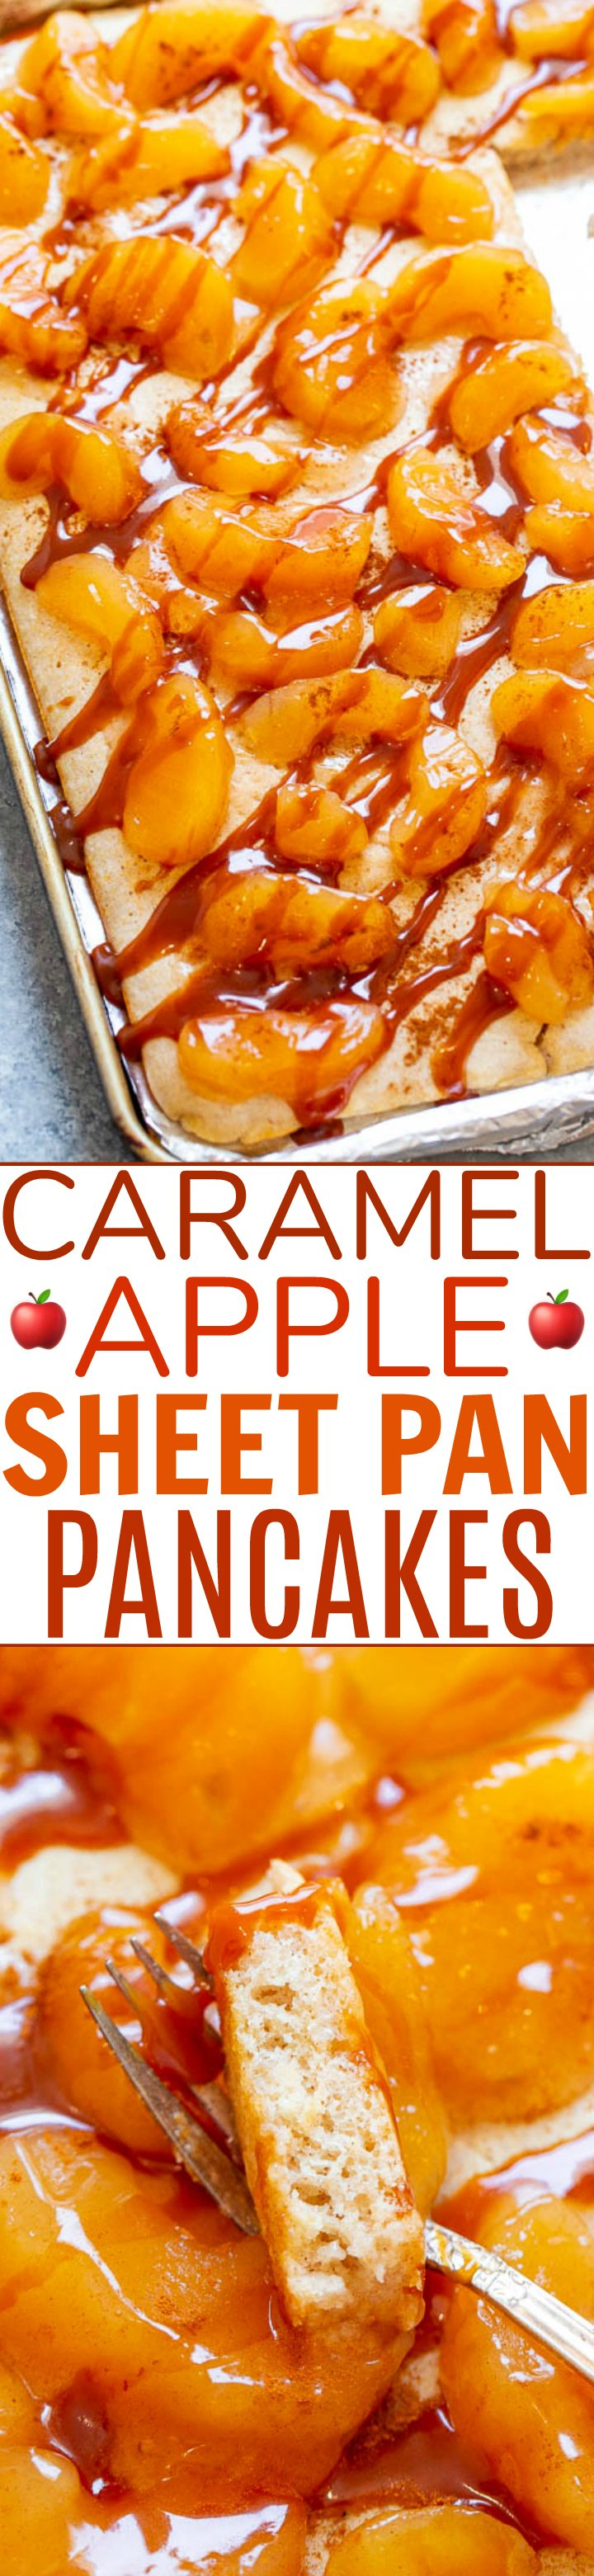 Caramel Apple Sheet Pan Pancakes - Craving pancakes but not the work of standing at the stove flipping them? Make these EASY sheet pan pancakes!! Perfect for a weekend brunch or as a weekday breakfast because they're ready in 10 minutes!!